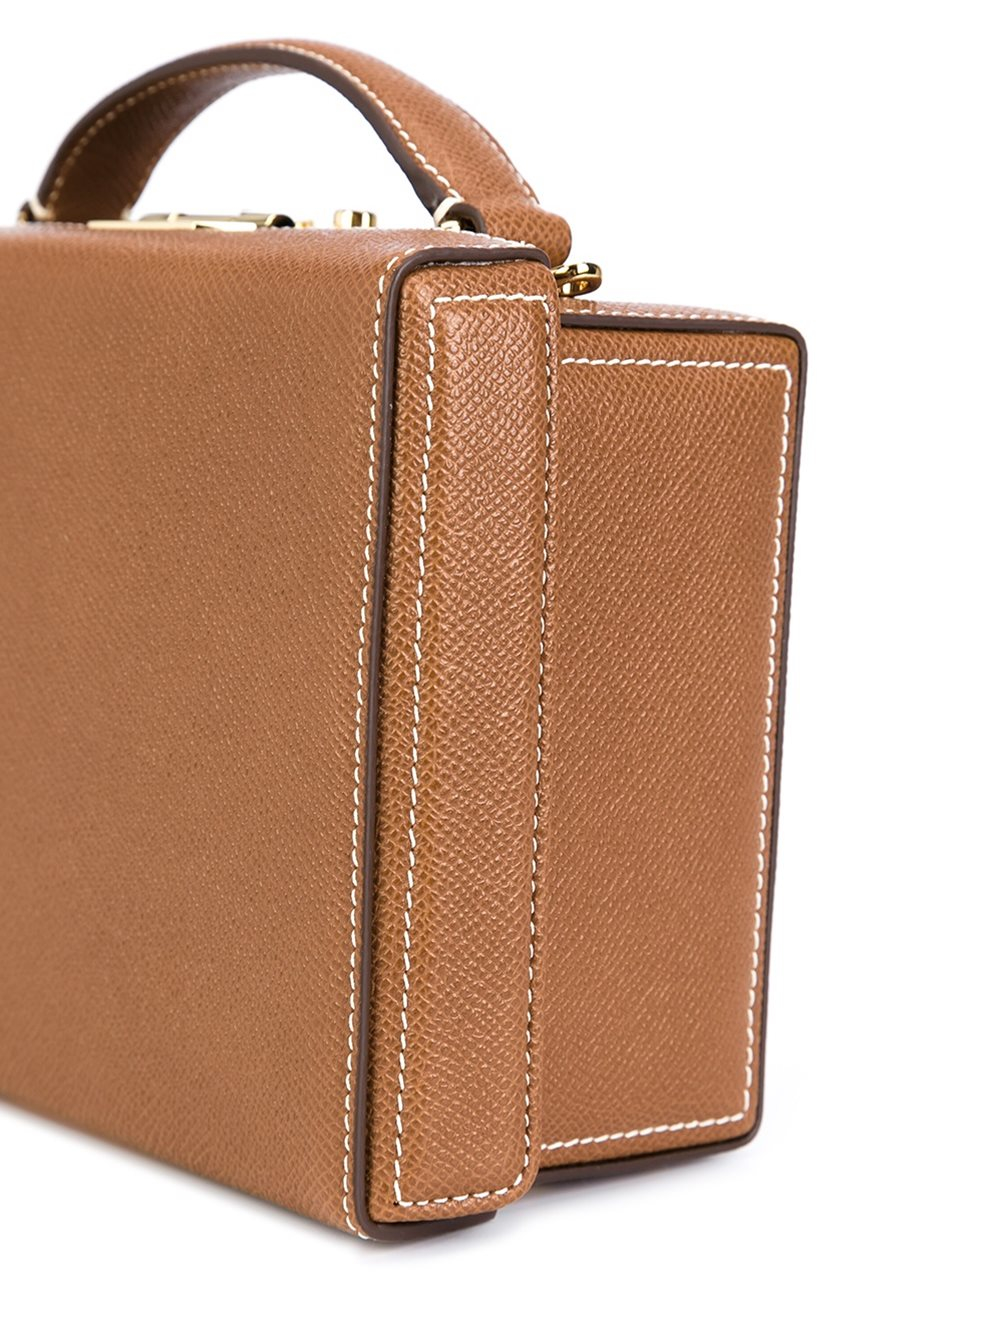 Mark Cross Grace Leather Box Bag in Brown